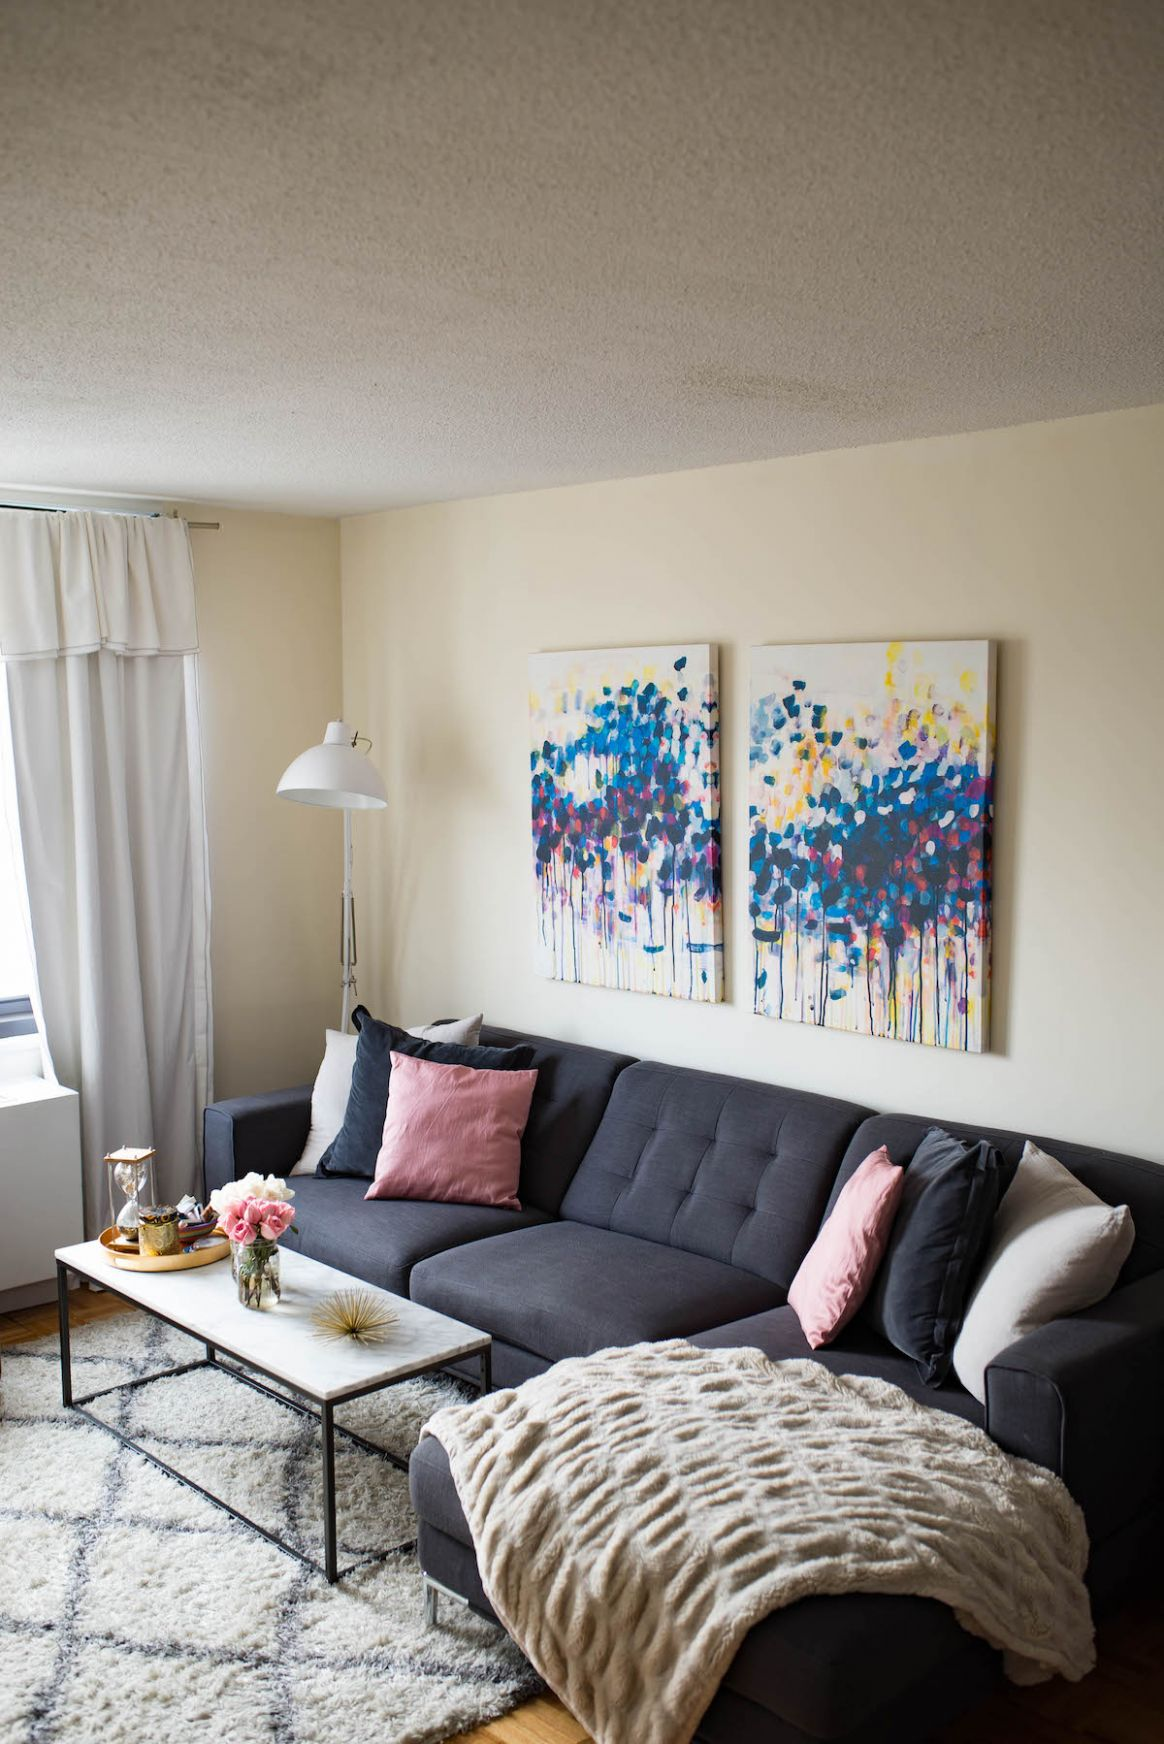 Home Decor Update | New York City Apartment 12 | Katie's Bliss